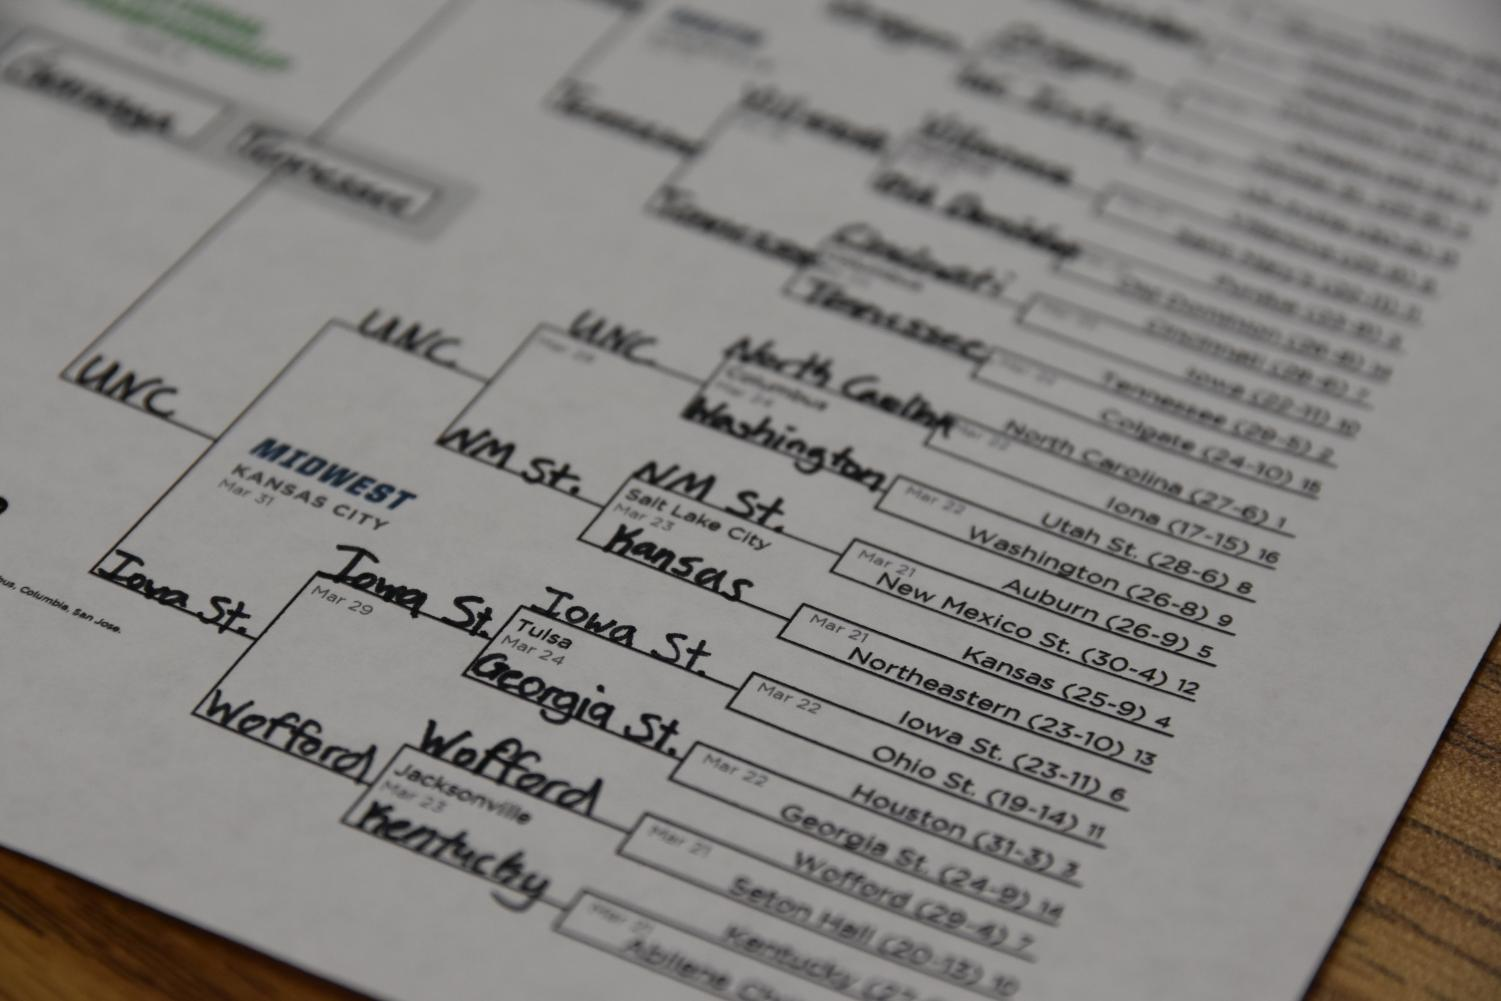 March Madness is known for Cinderella or giant-killer teams.